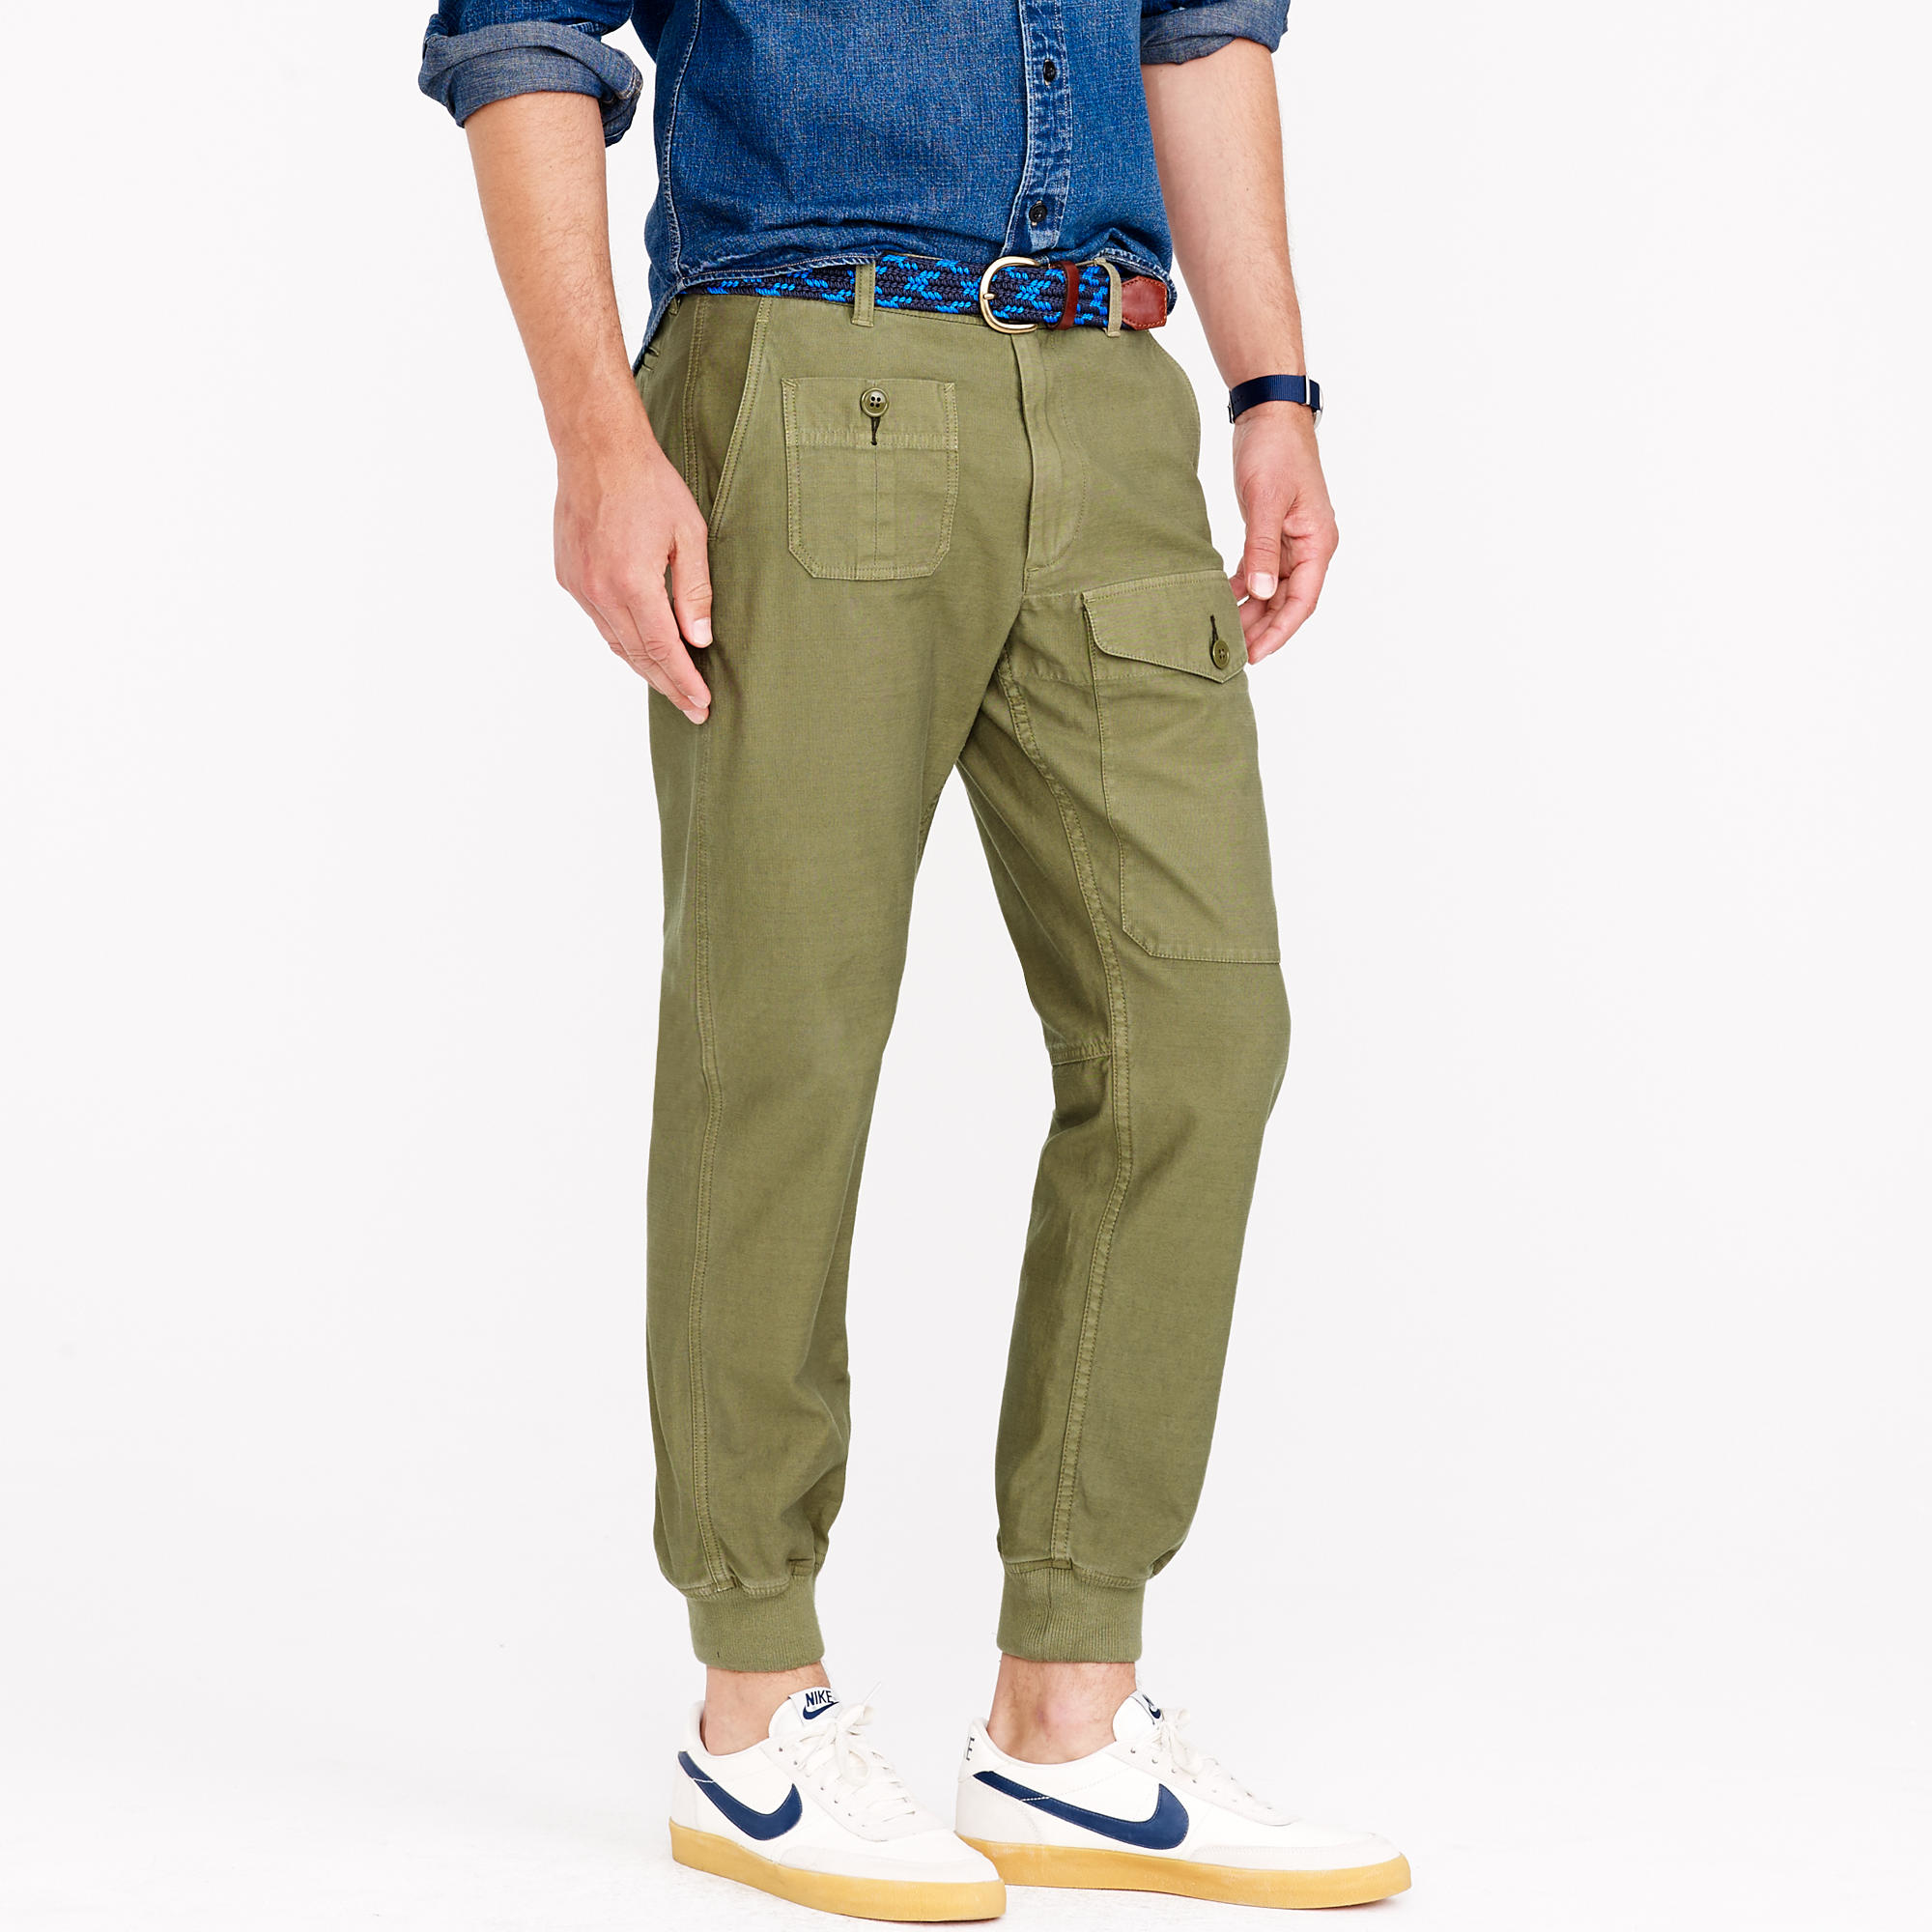 Fashion Advice Crisis J Crew Factory Jcf Malefashionadvice